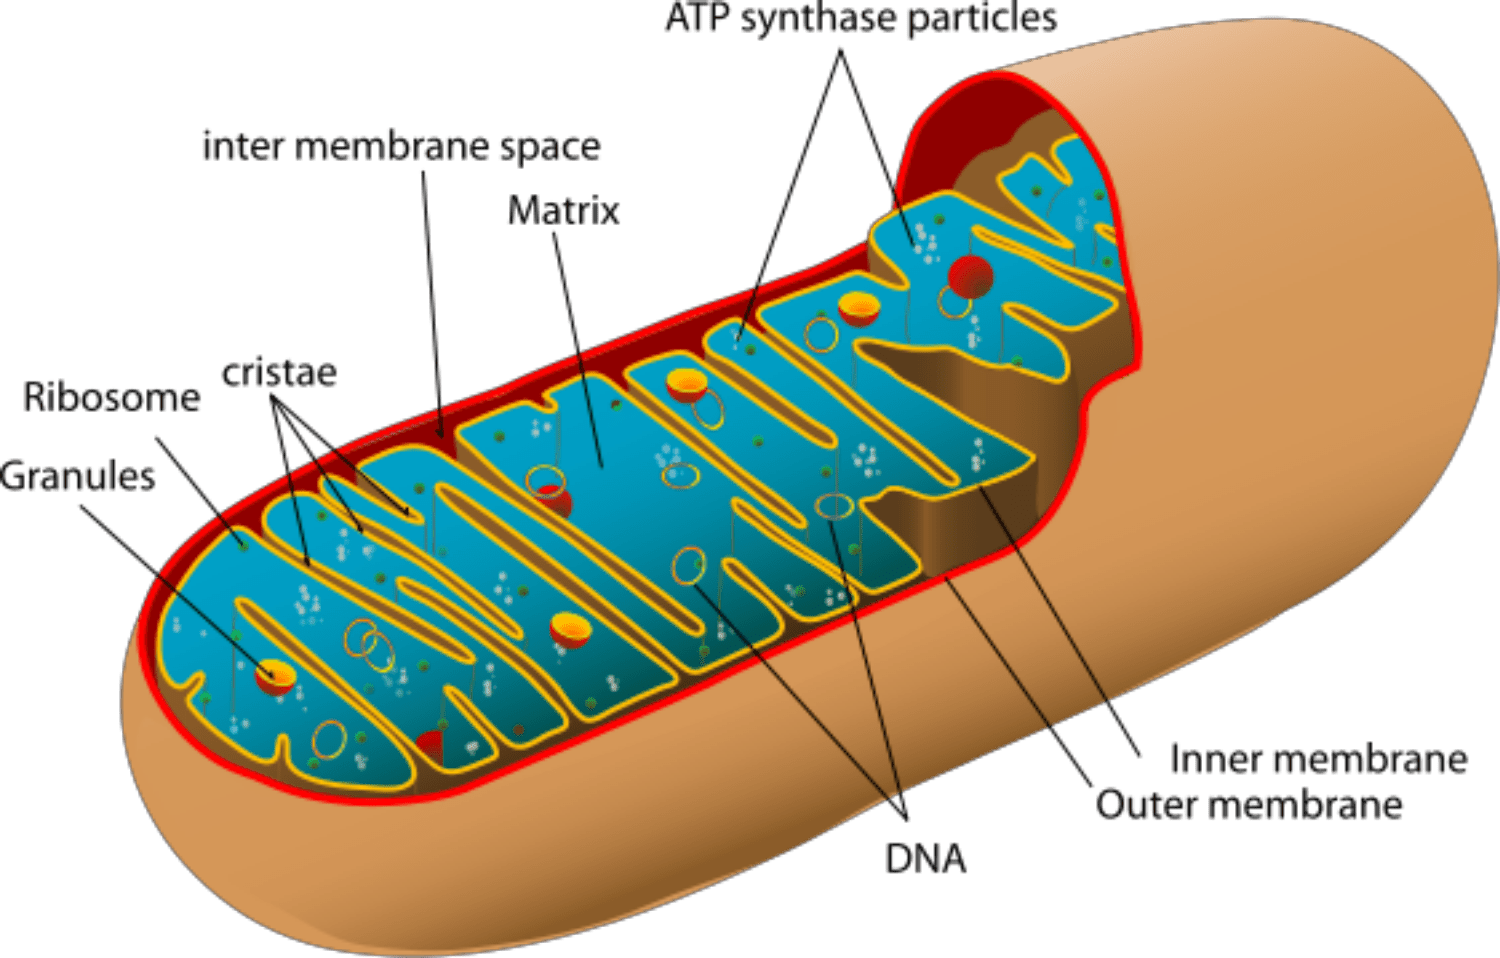 Mitochondria - Power Producers in Cells